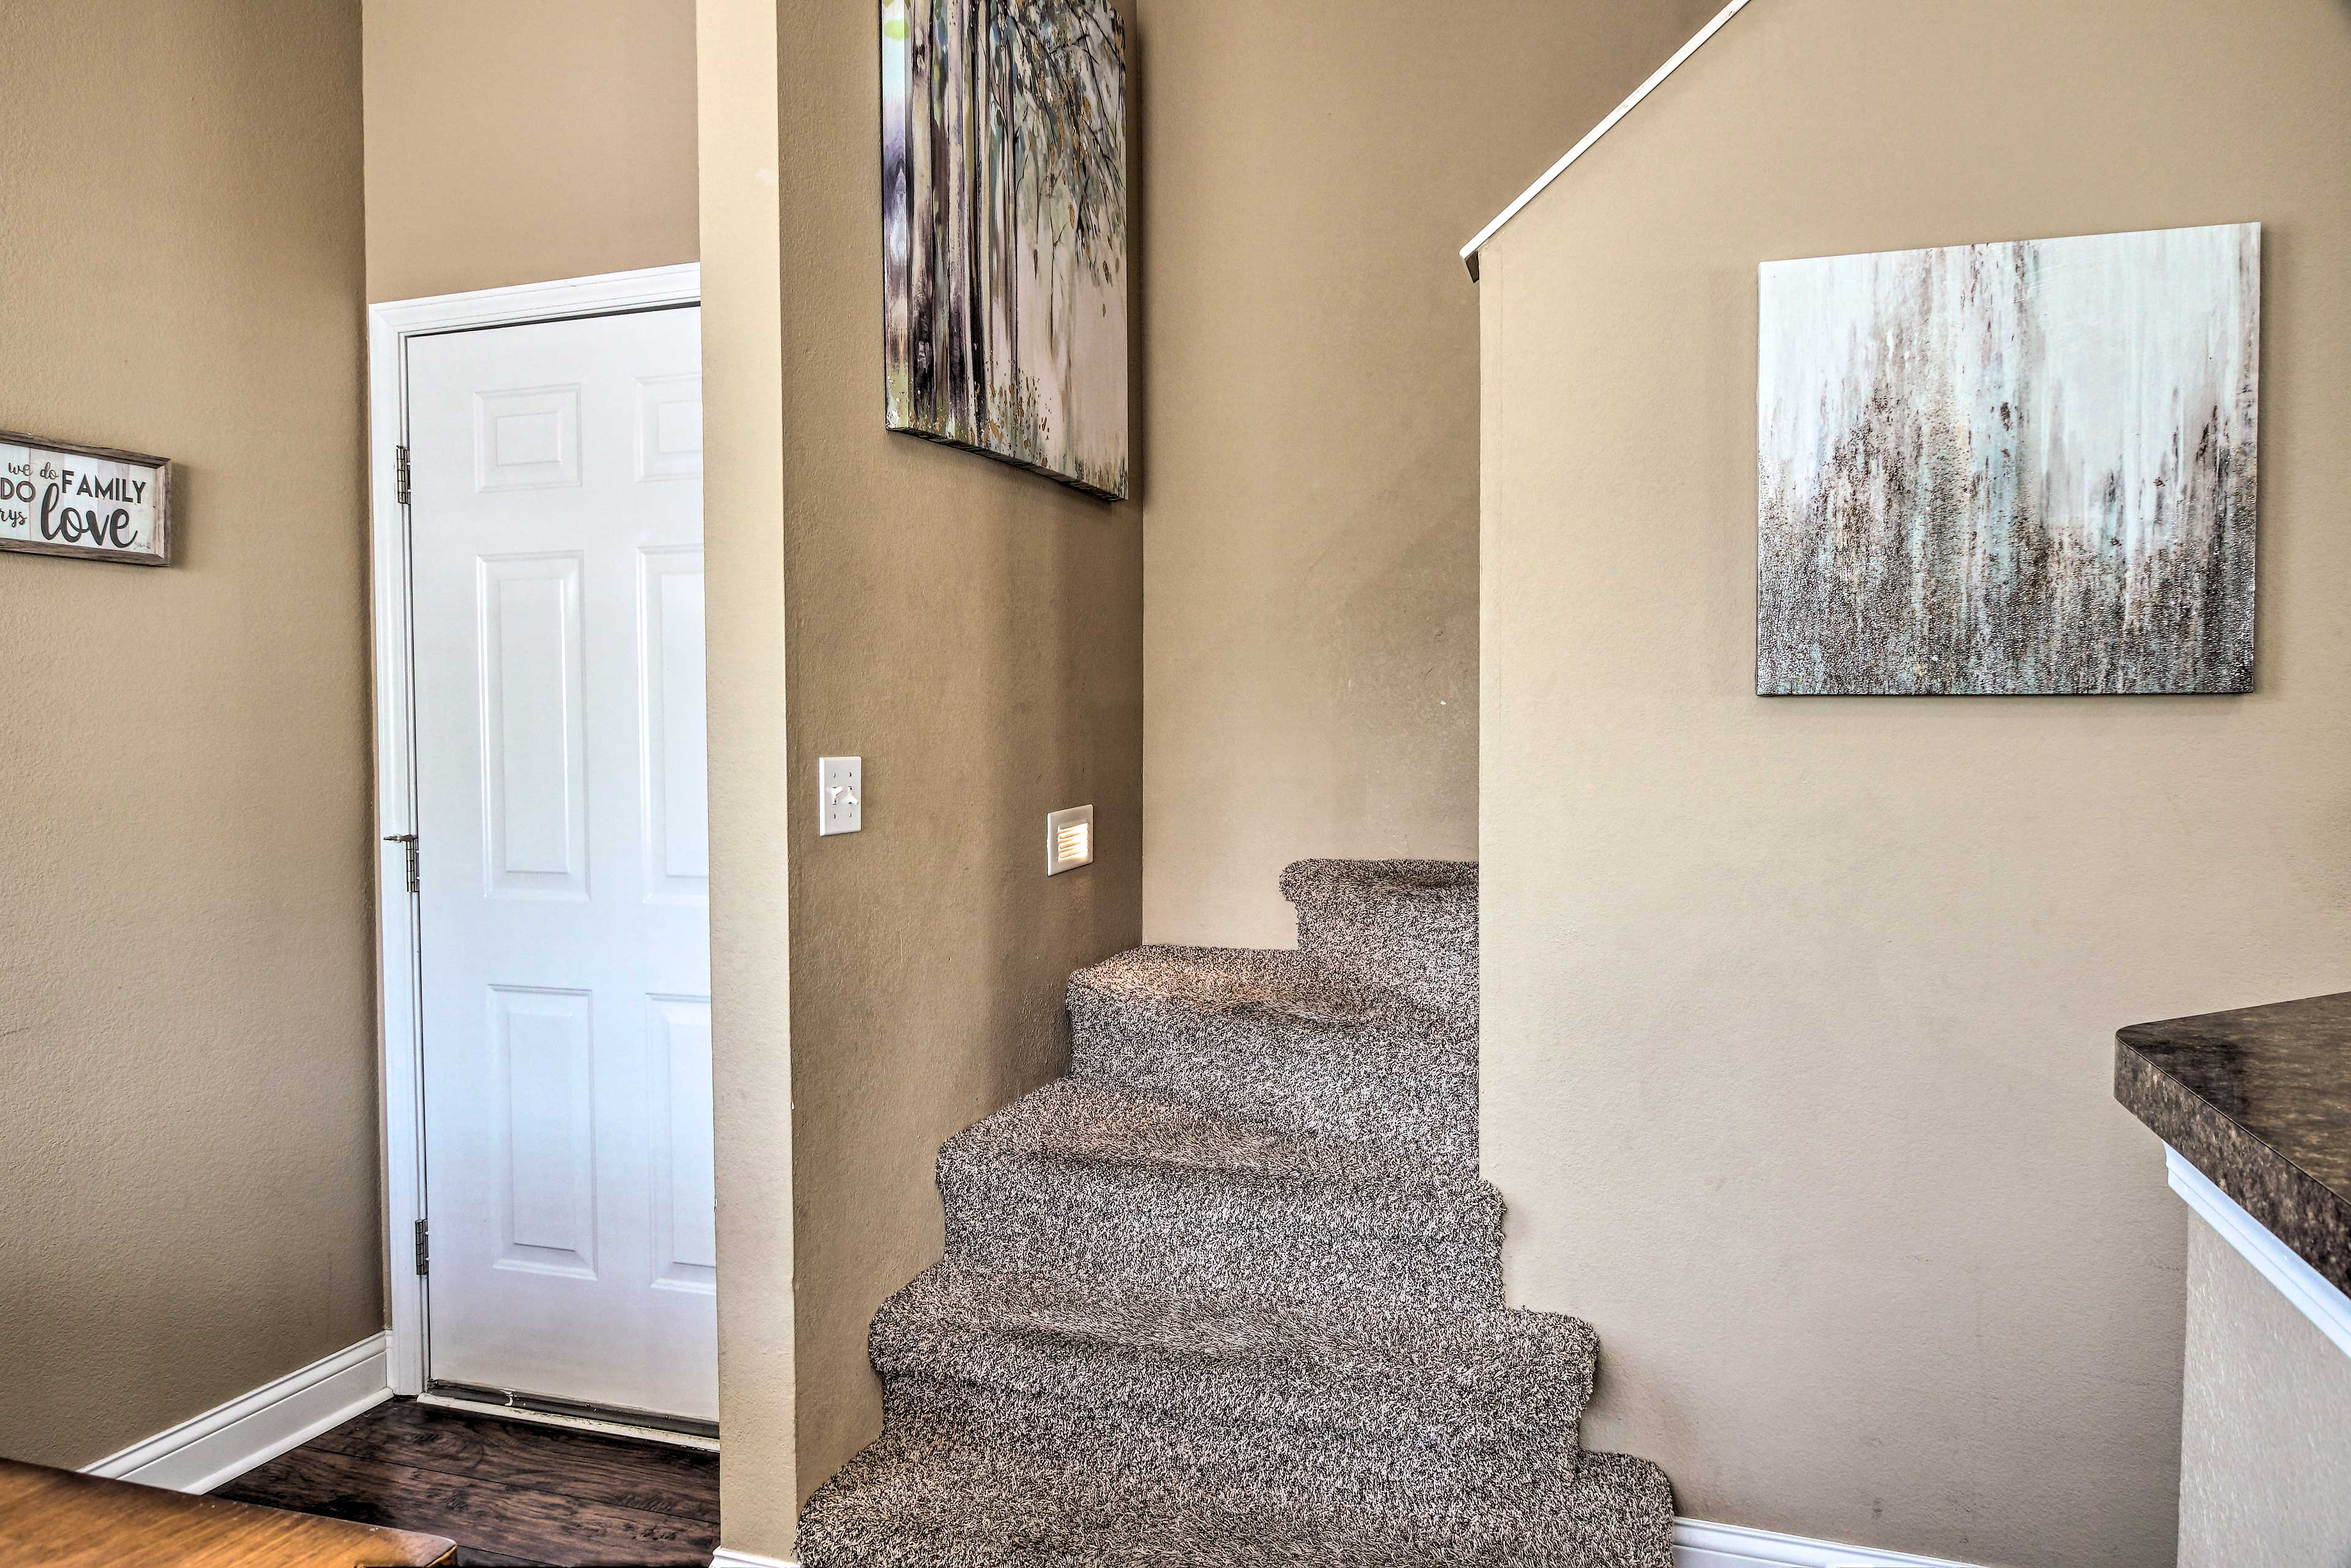 Stairs take you up to multiple bedrooms.